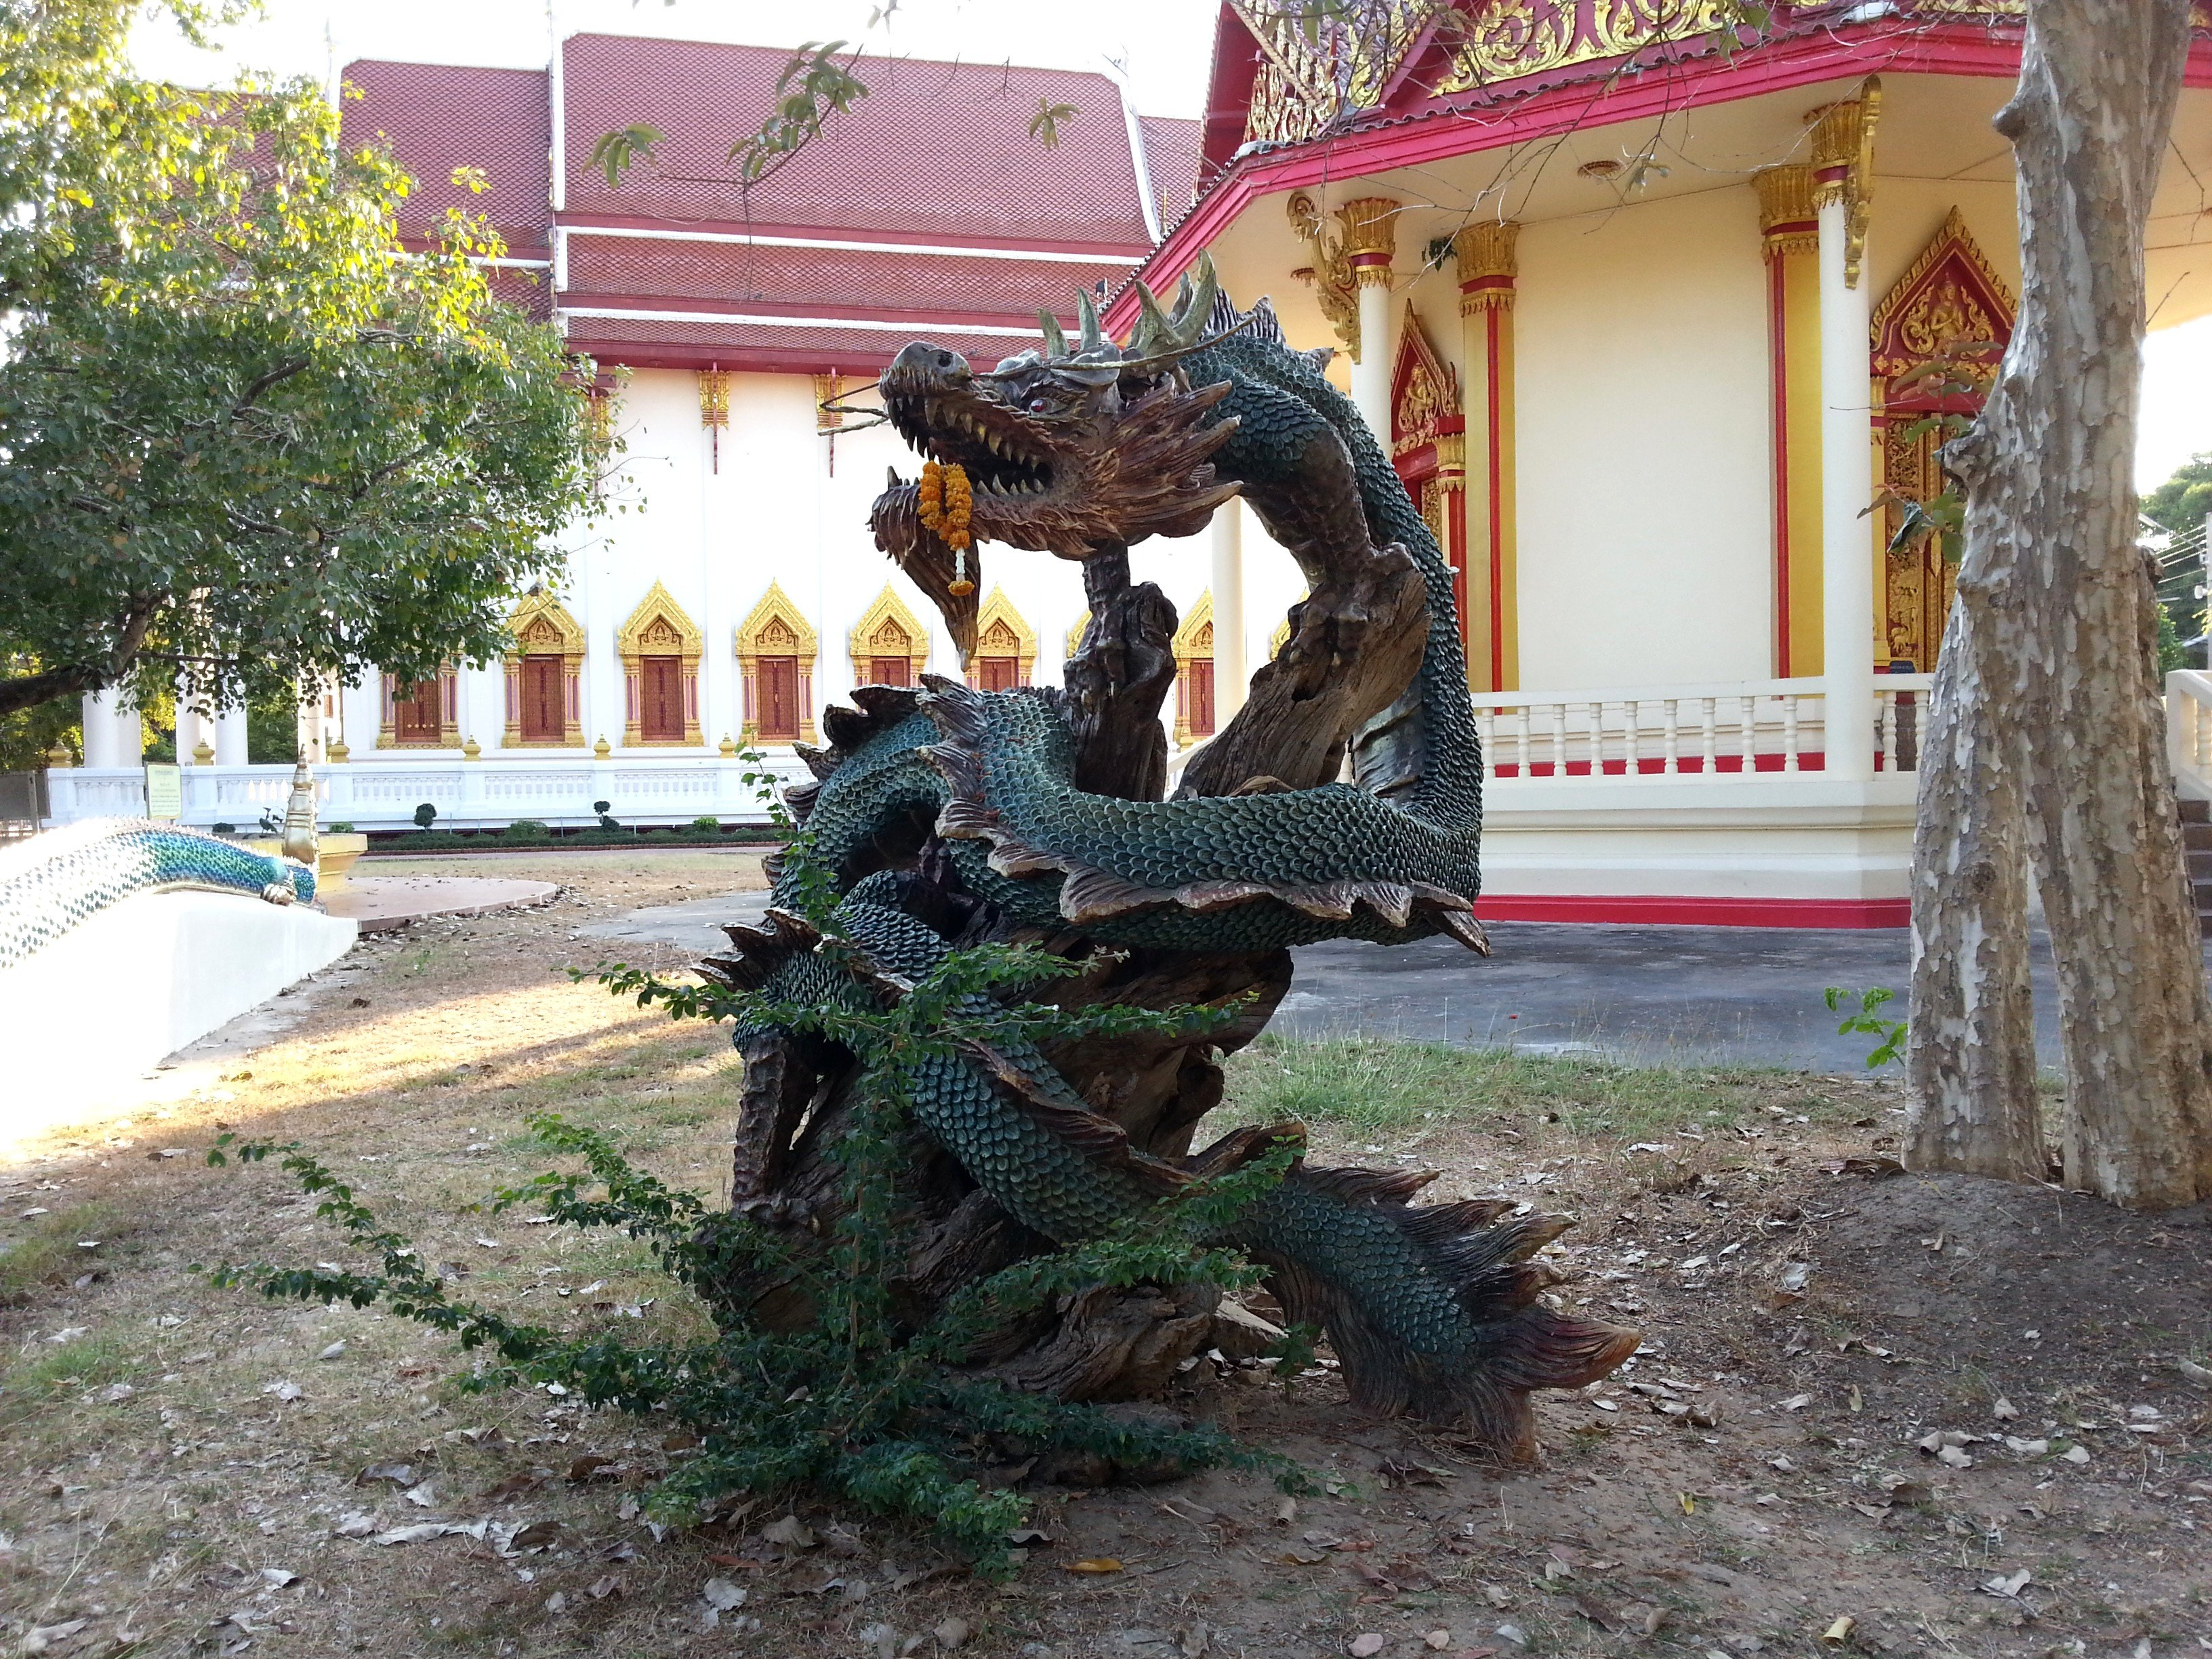 Dragon sculpture at Wat Pothisomphon